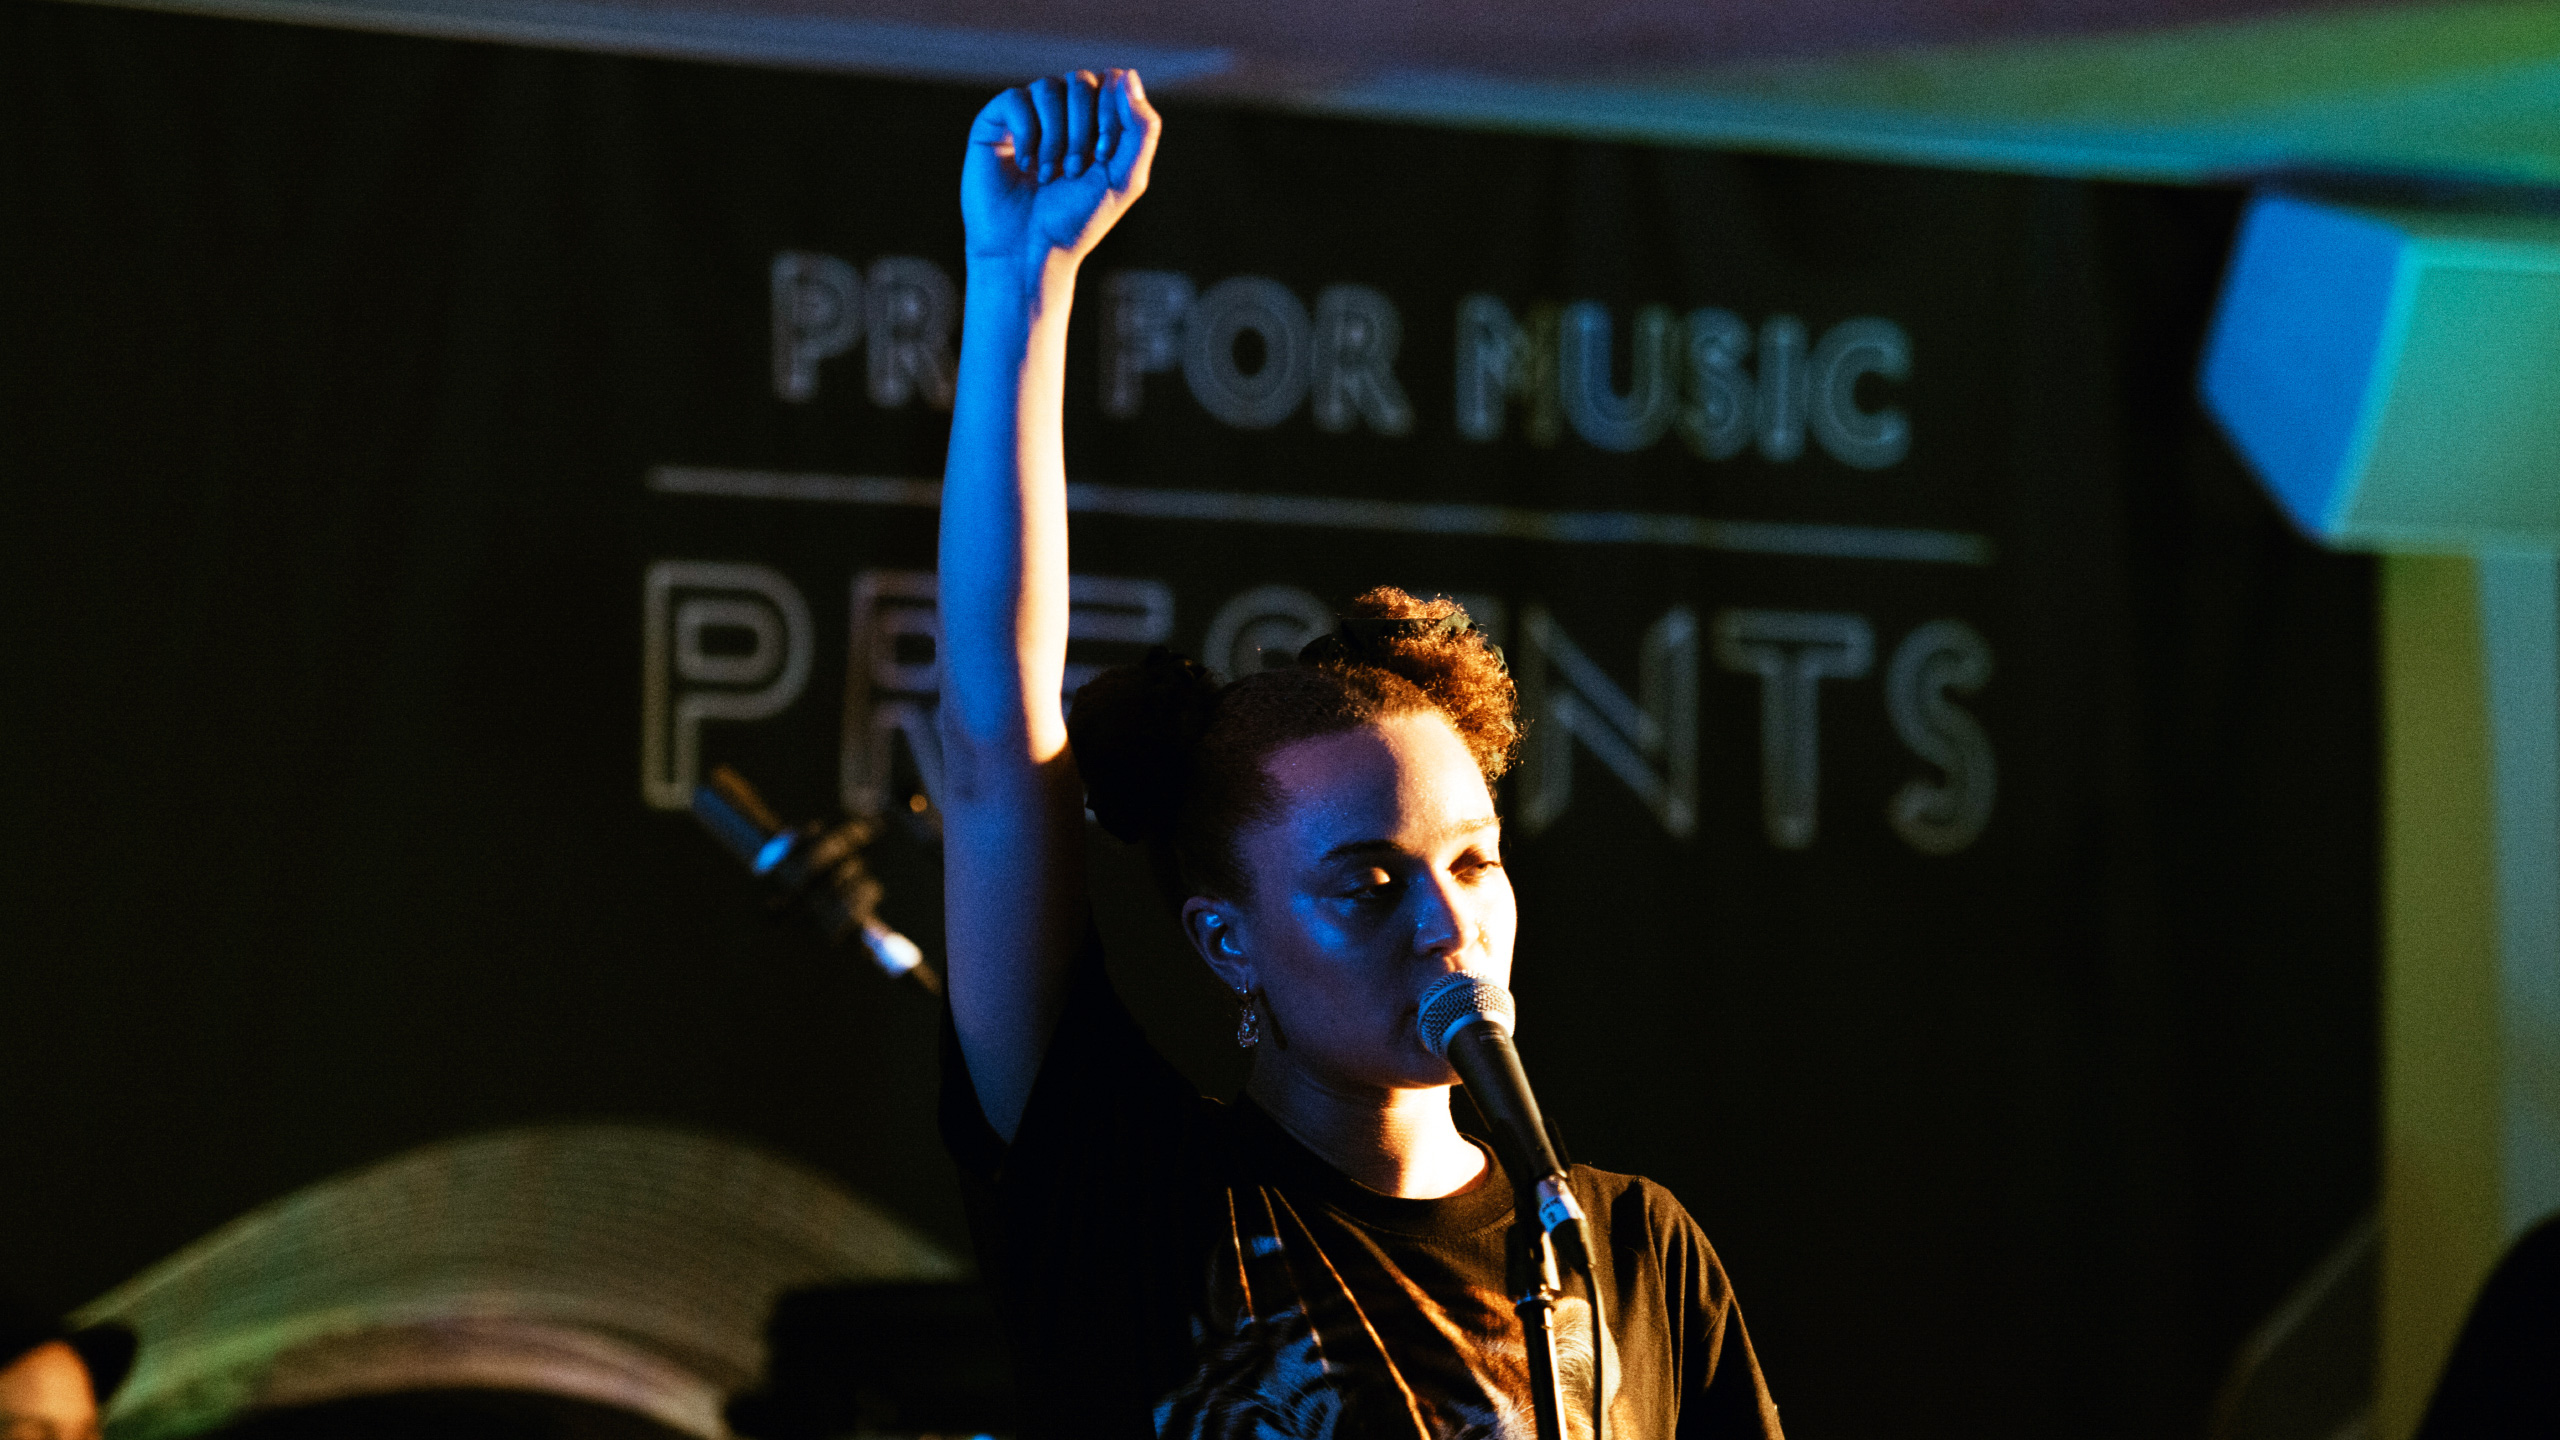 Connie Constance raises a clenched fist as she performs at PRS for Music Presents